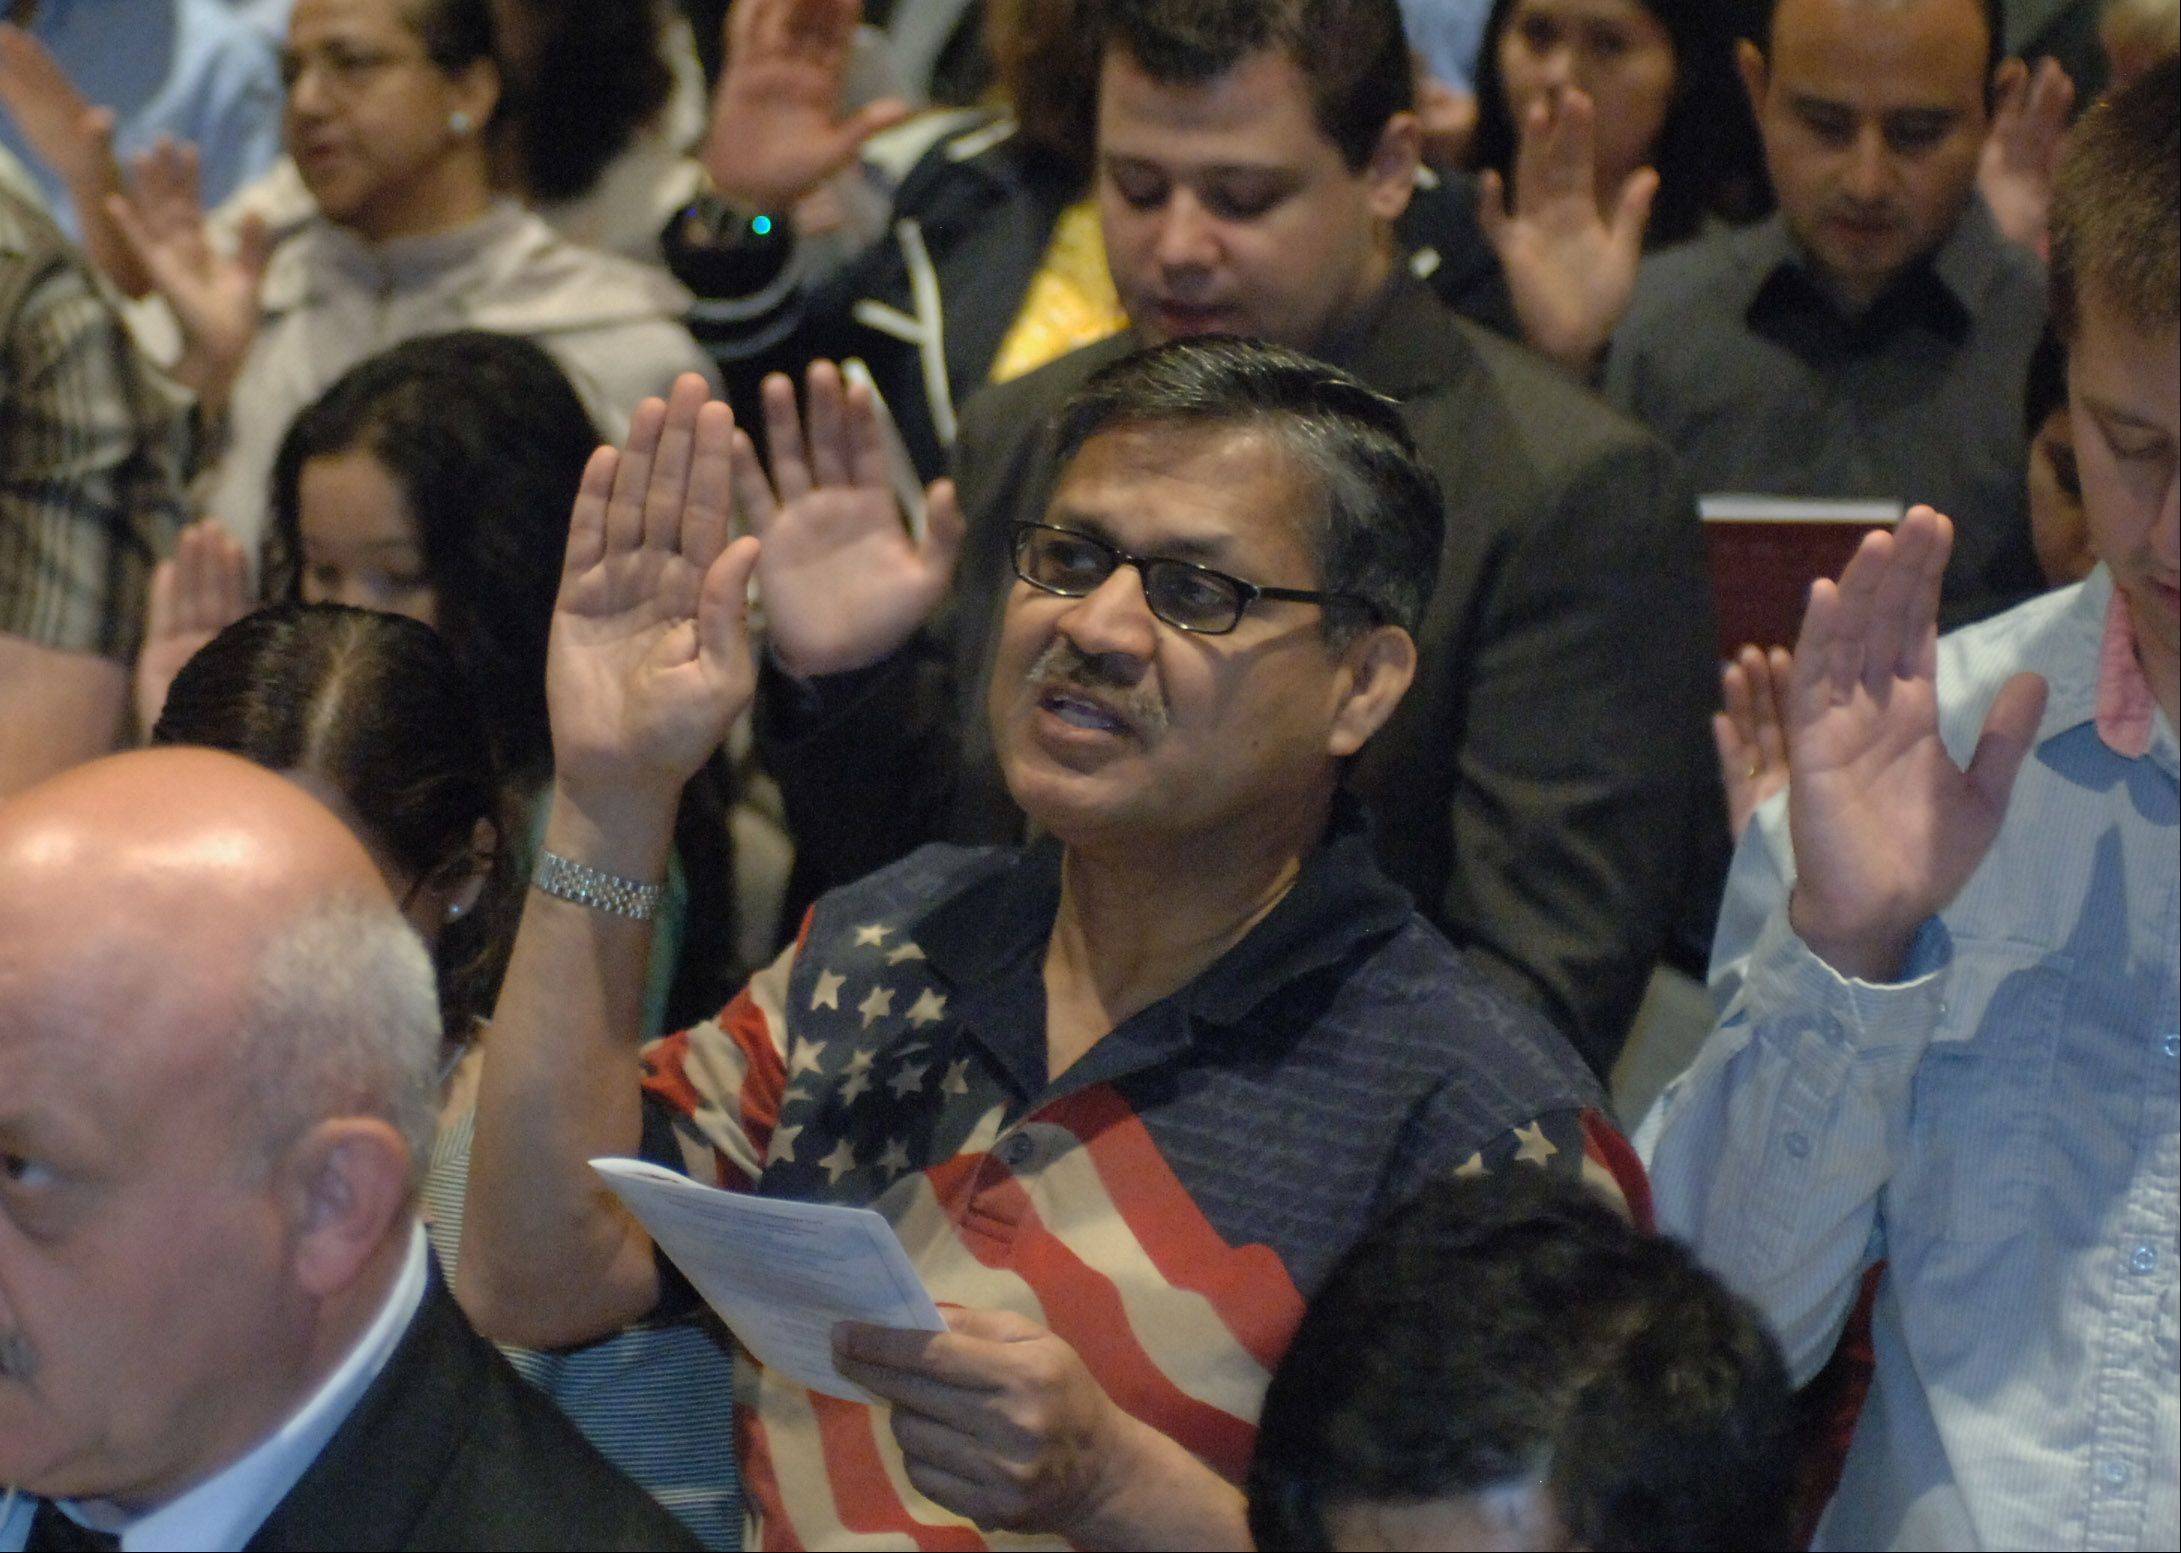 Basith Meer of Lincolnshire takes the Oath of Allegiance during a naturalization ceremony Monday at the Round Lake Beach Cultural & Civic Center. Mano a Mano Family Resource Center in partnership with the Round Lake Area Public Library hosted the event.